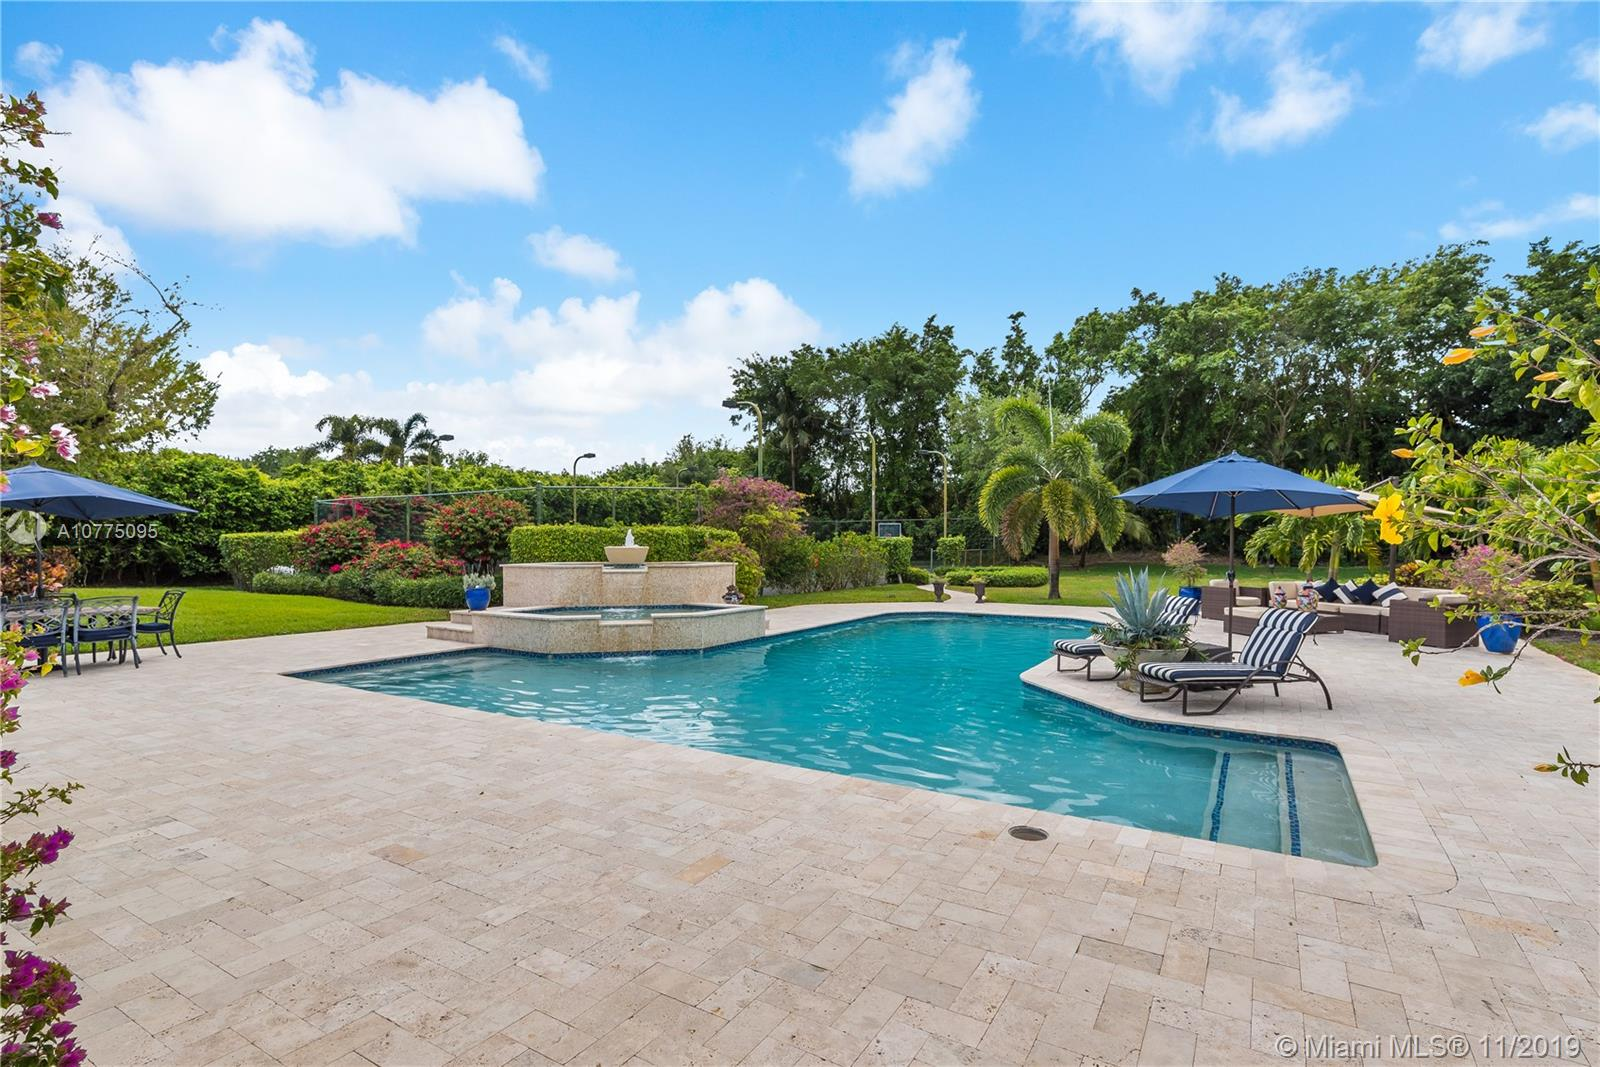 8208 Twin Lake Dr, Boca Raton, FL 33496